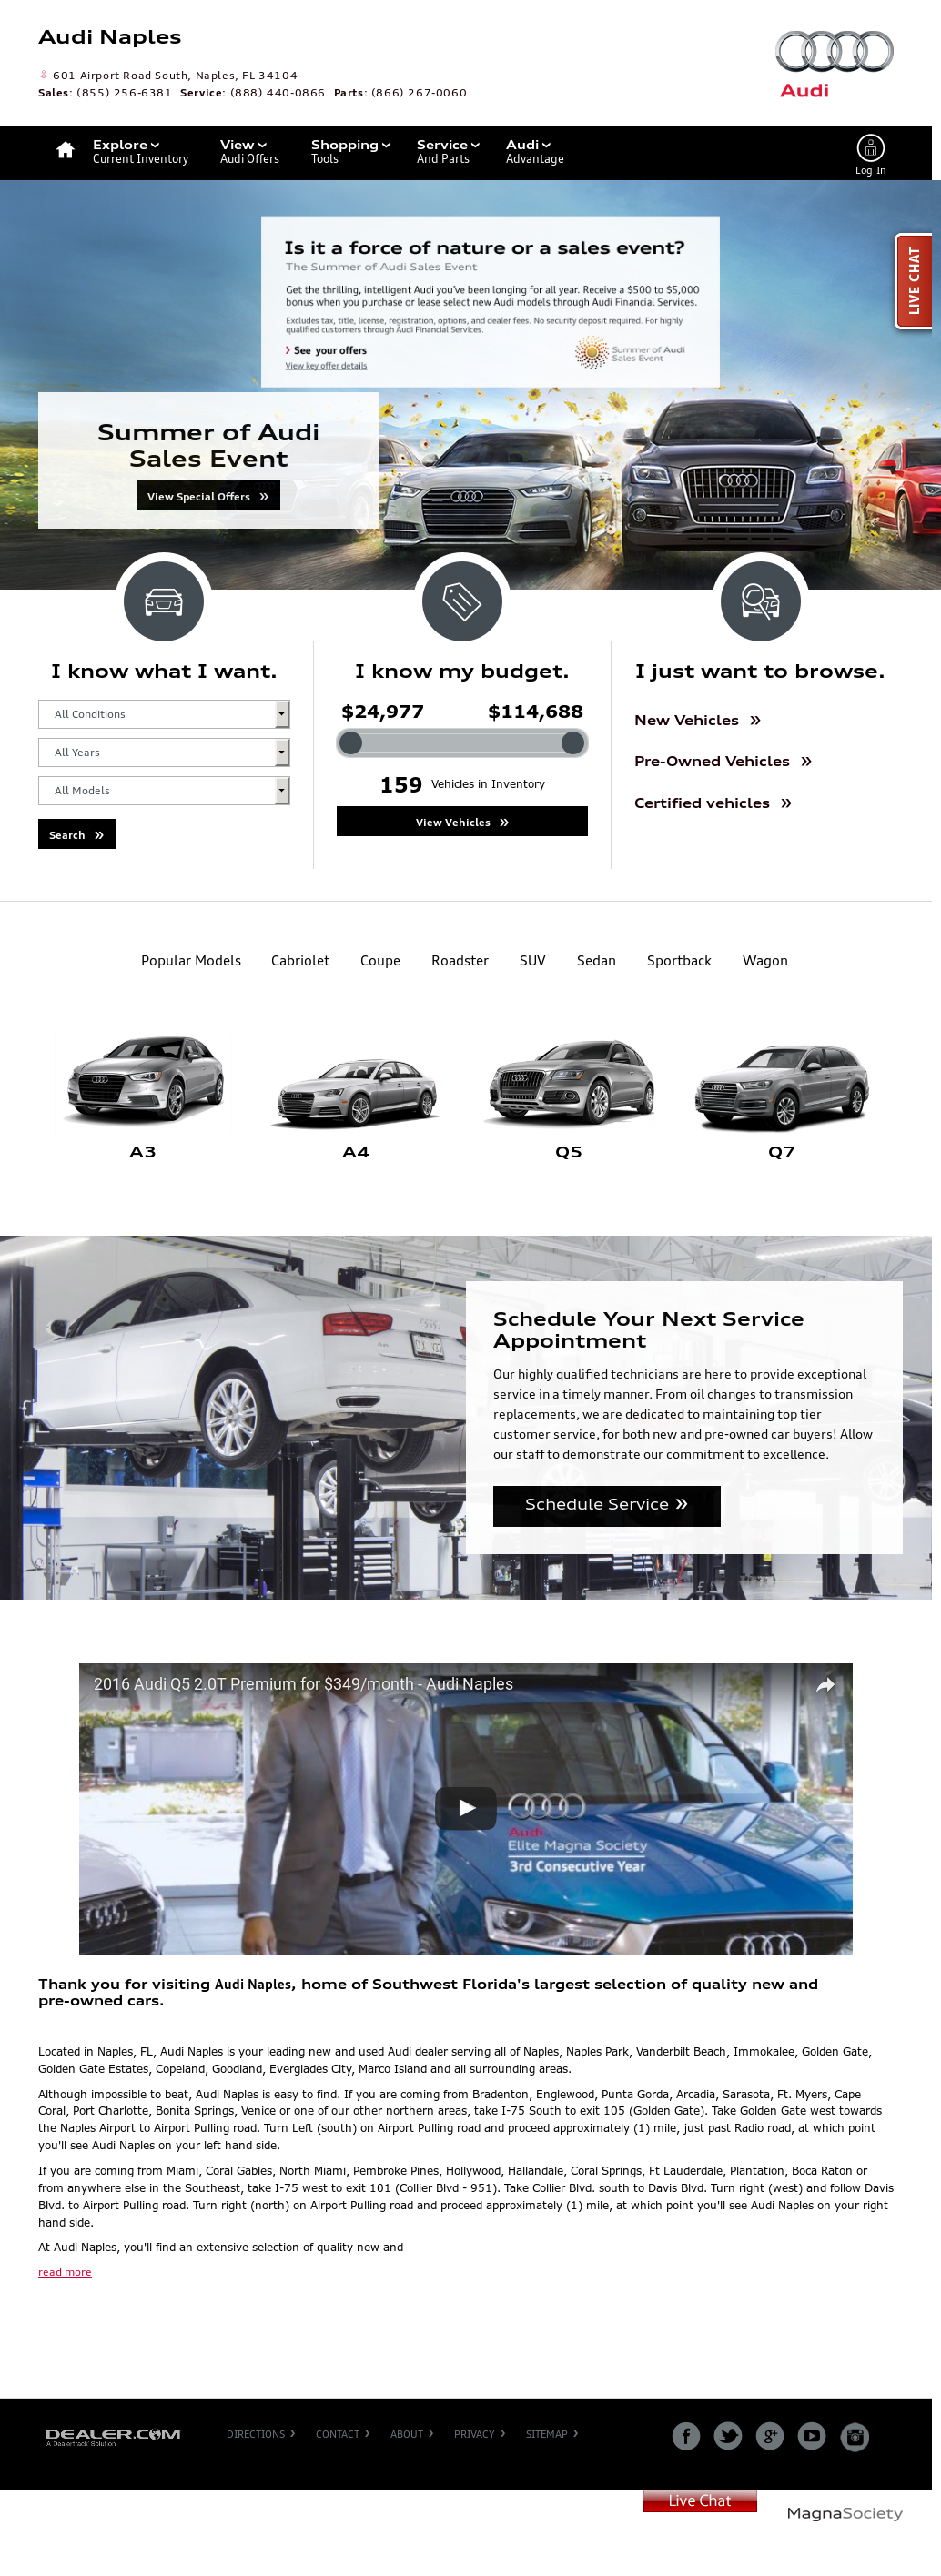 Audi Naples Competitors Revenue And Employees Owler Company Profile - Audi naples